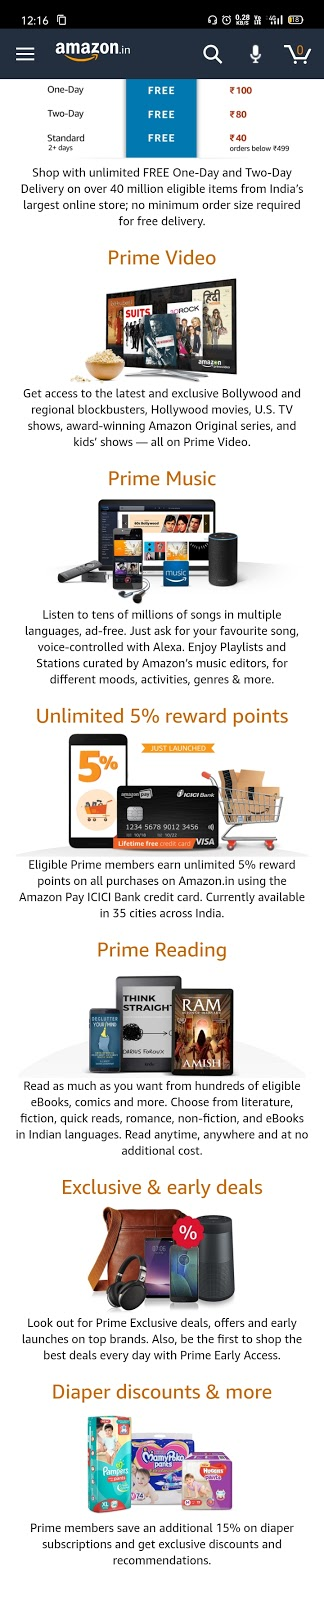 Amazon youth offer:- Get amazon prime membership for 3 months in just Rs 164 and for 1 year Rs 499.